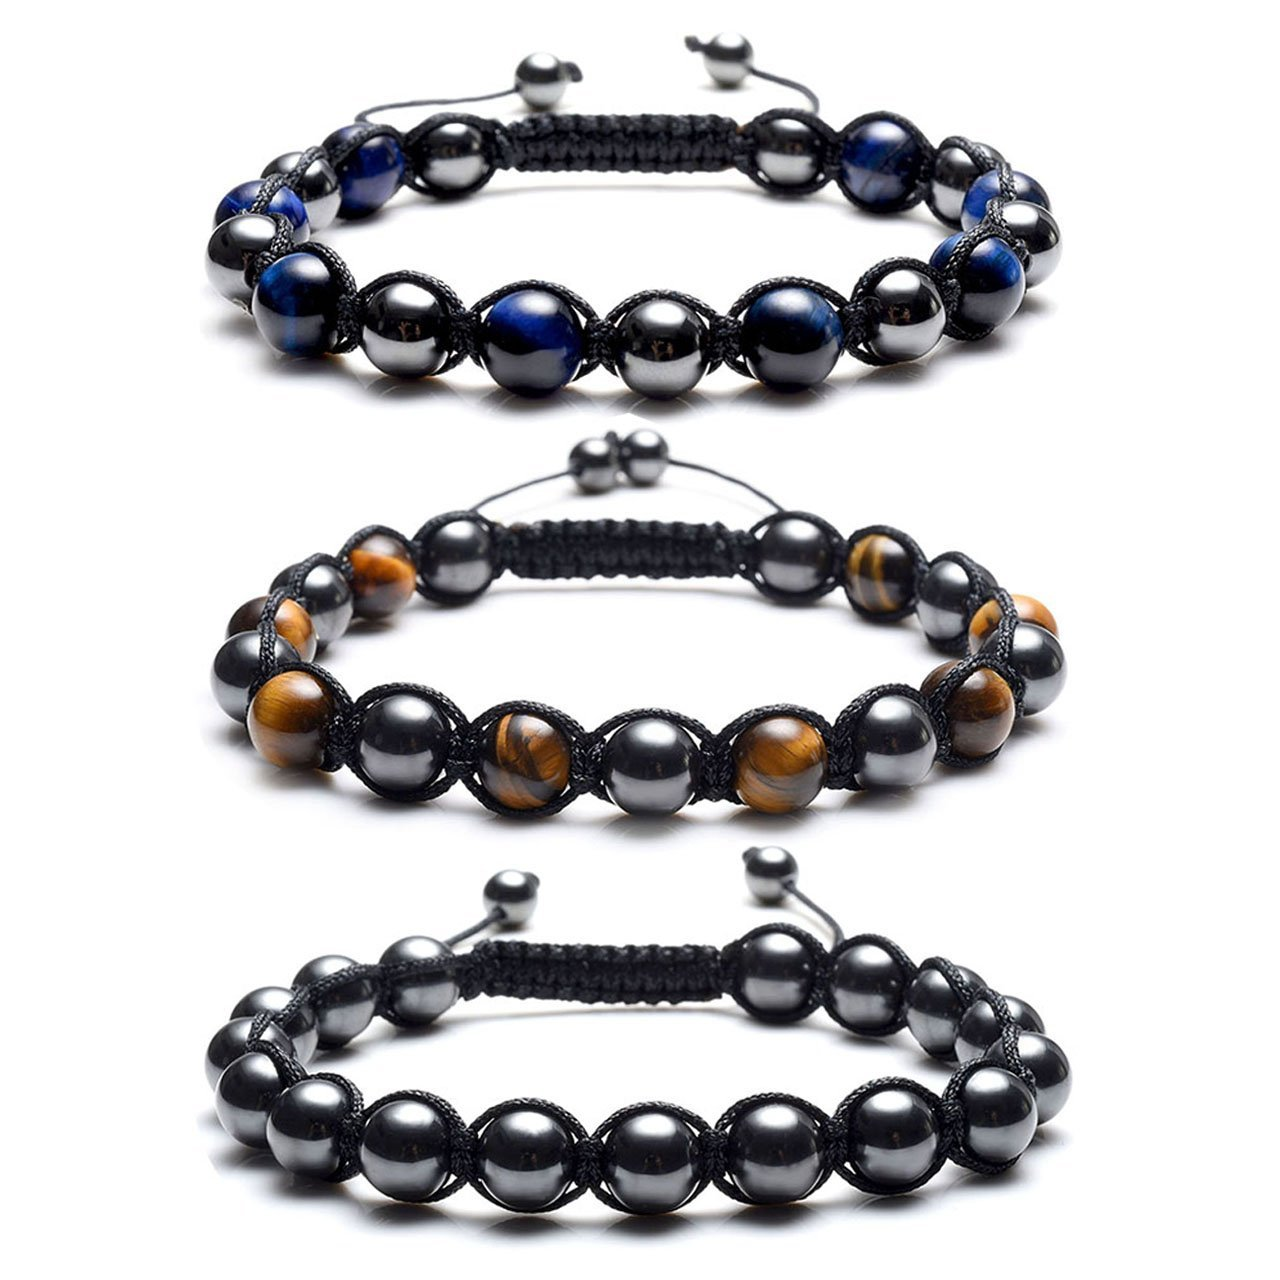 Top Plaza Men's Women's Reiki Healing Energy Natural Tiger Eye Stone Magnetic Hematite Therapy Beads Macrame Adjustable Braided Link Bracelet(Set Of 3) by Top Plaza (Image #2)